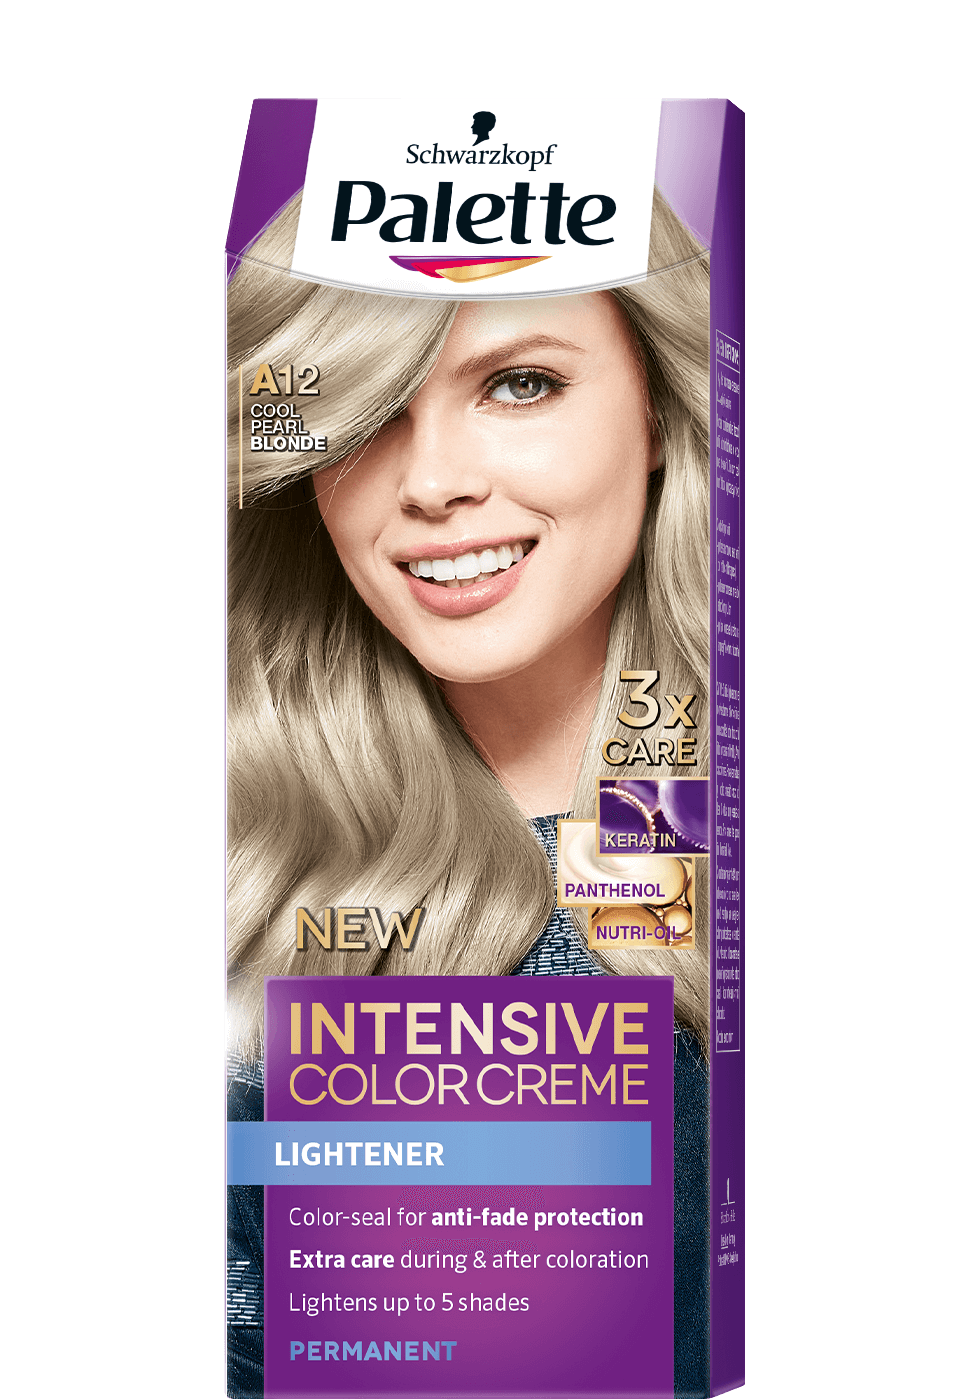 palette_com_icc_platinum_perfect_A12_cool_pearl_blonde_970x1400